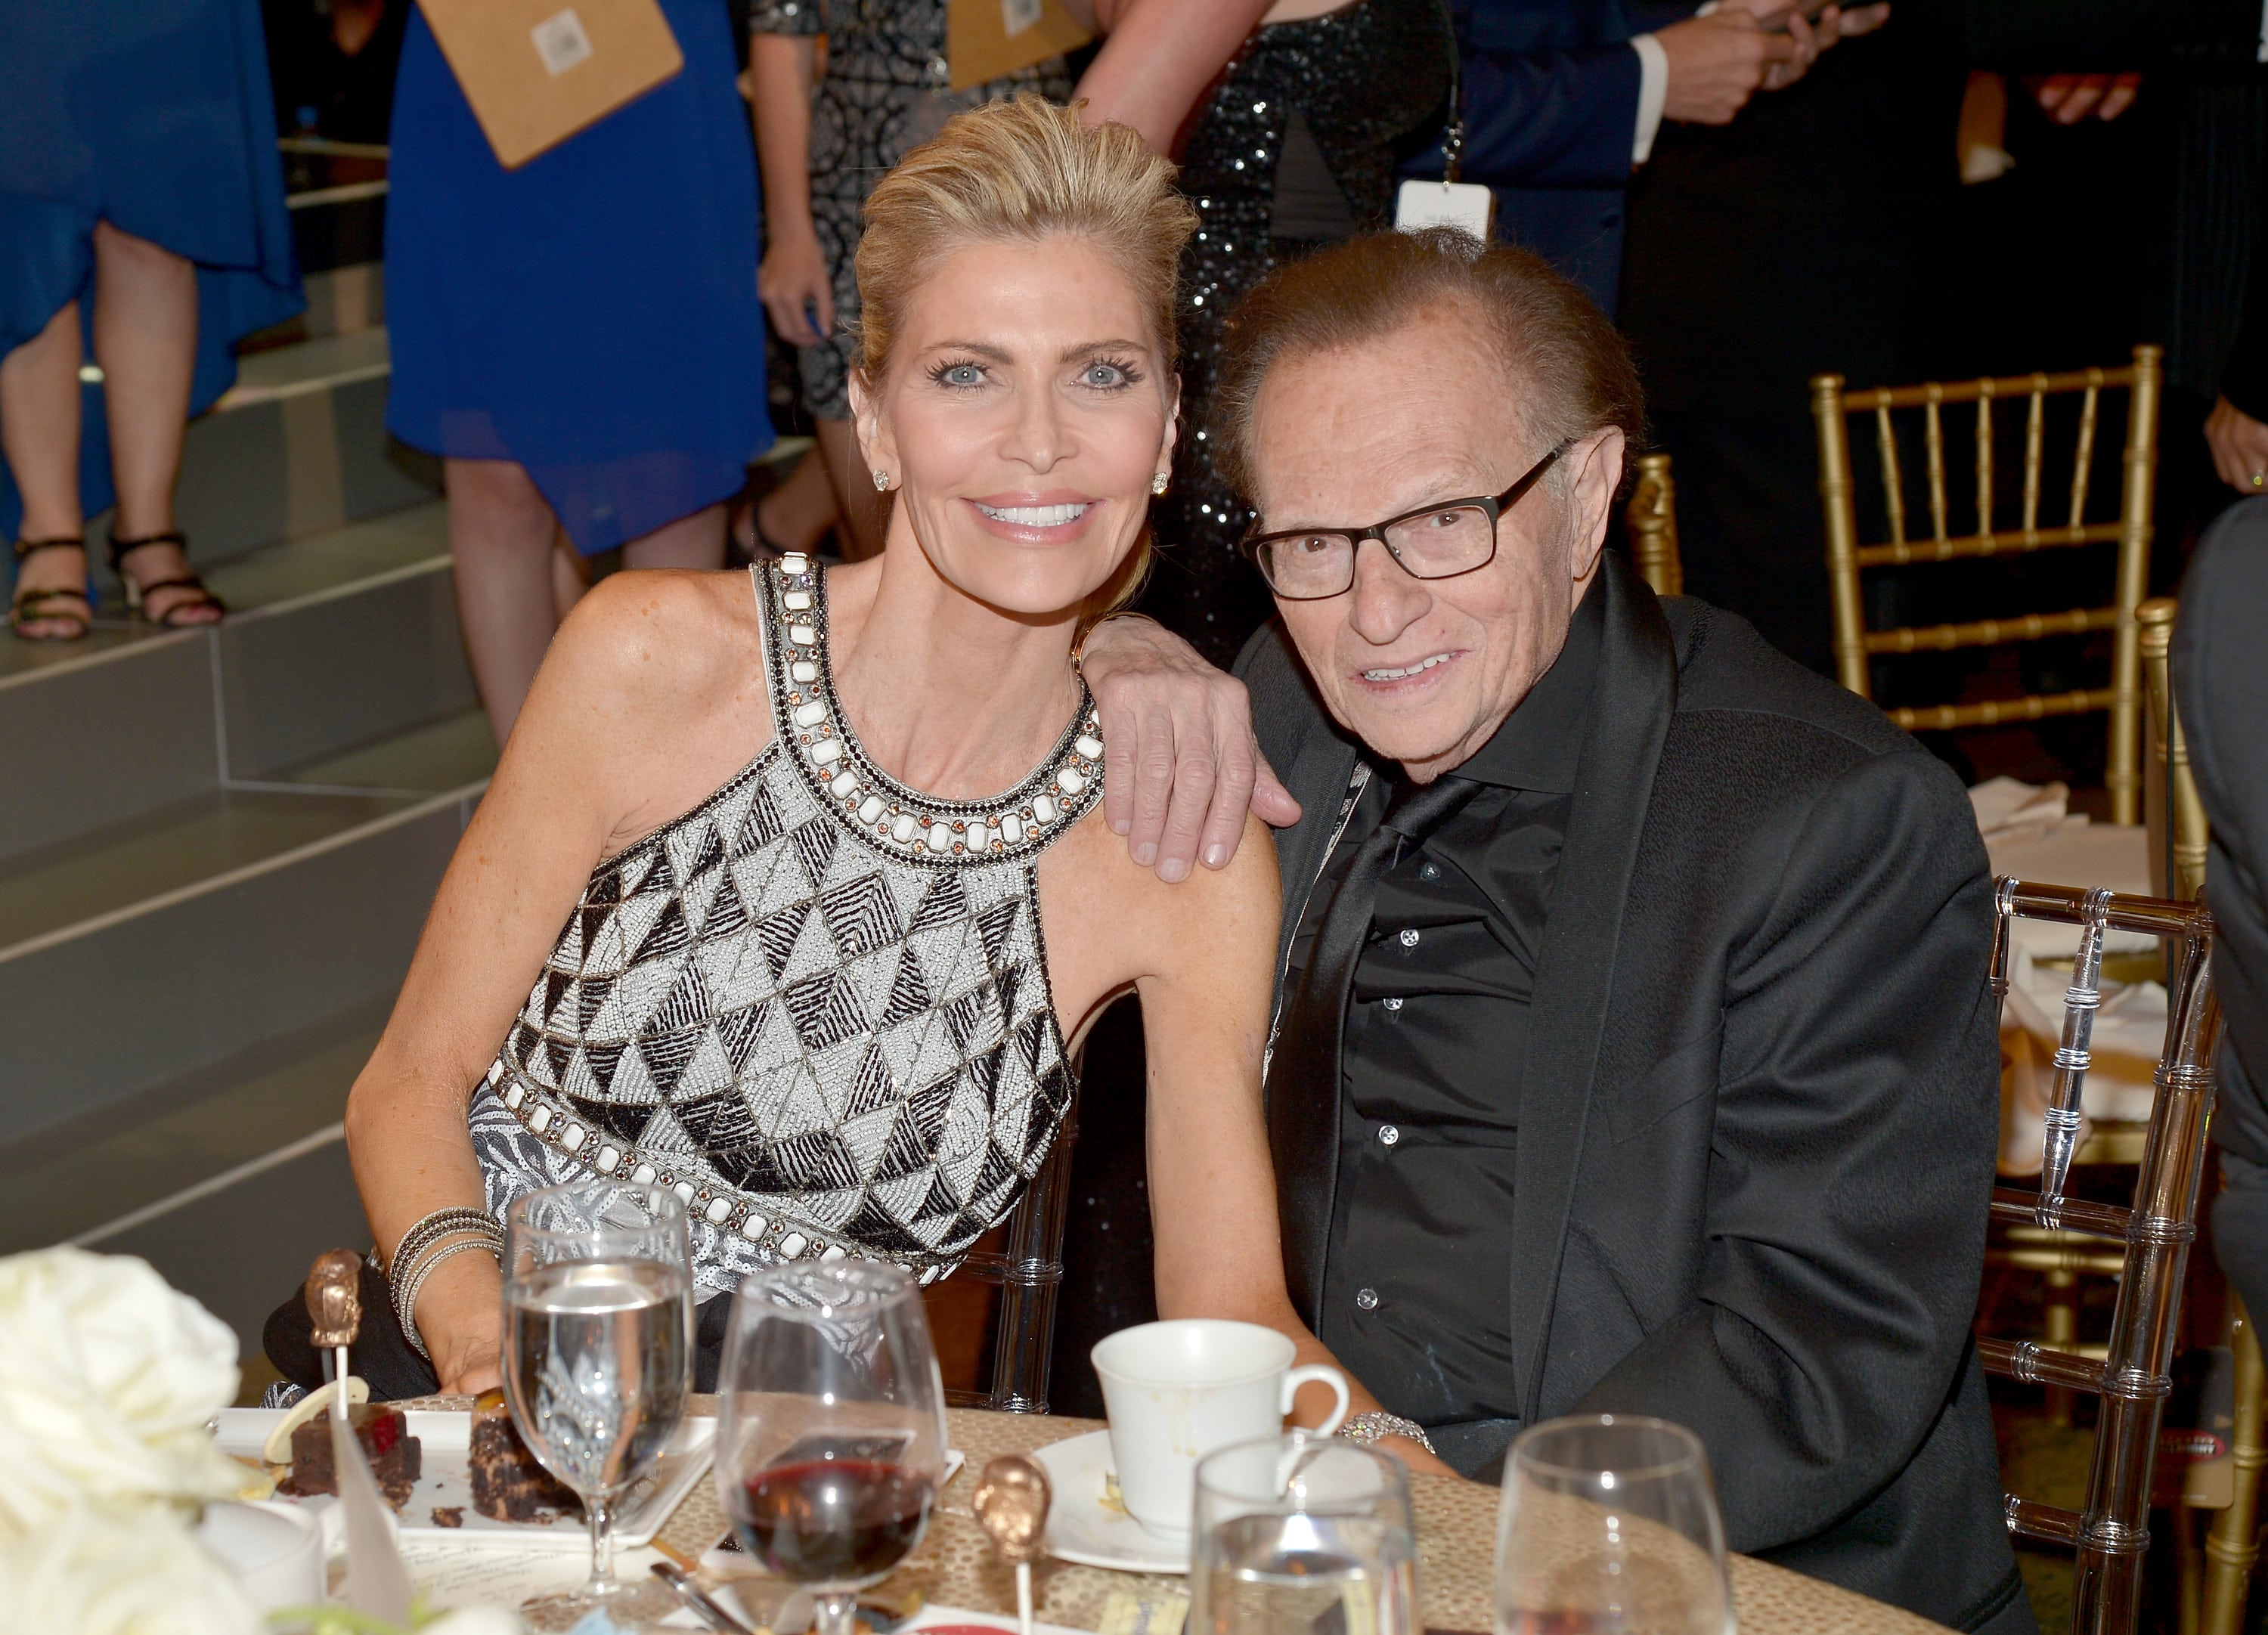 Larry King The Hollywood Gossip